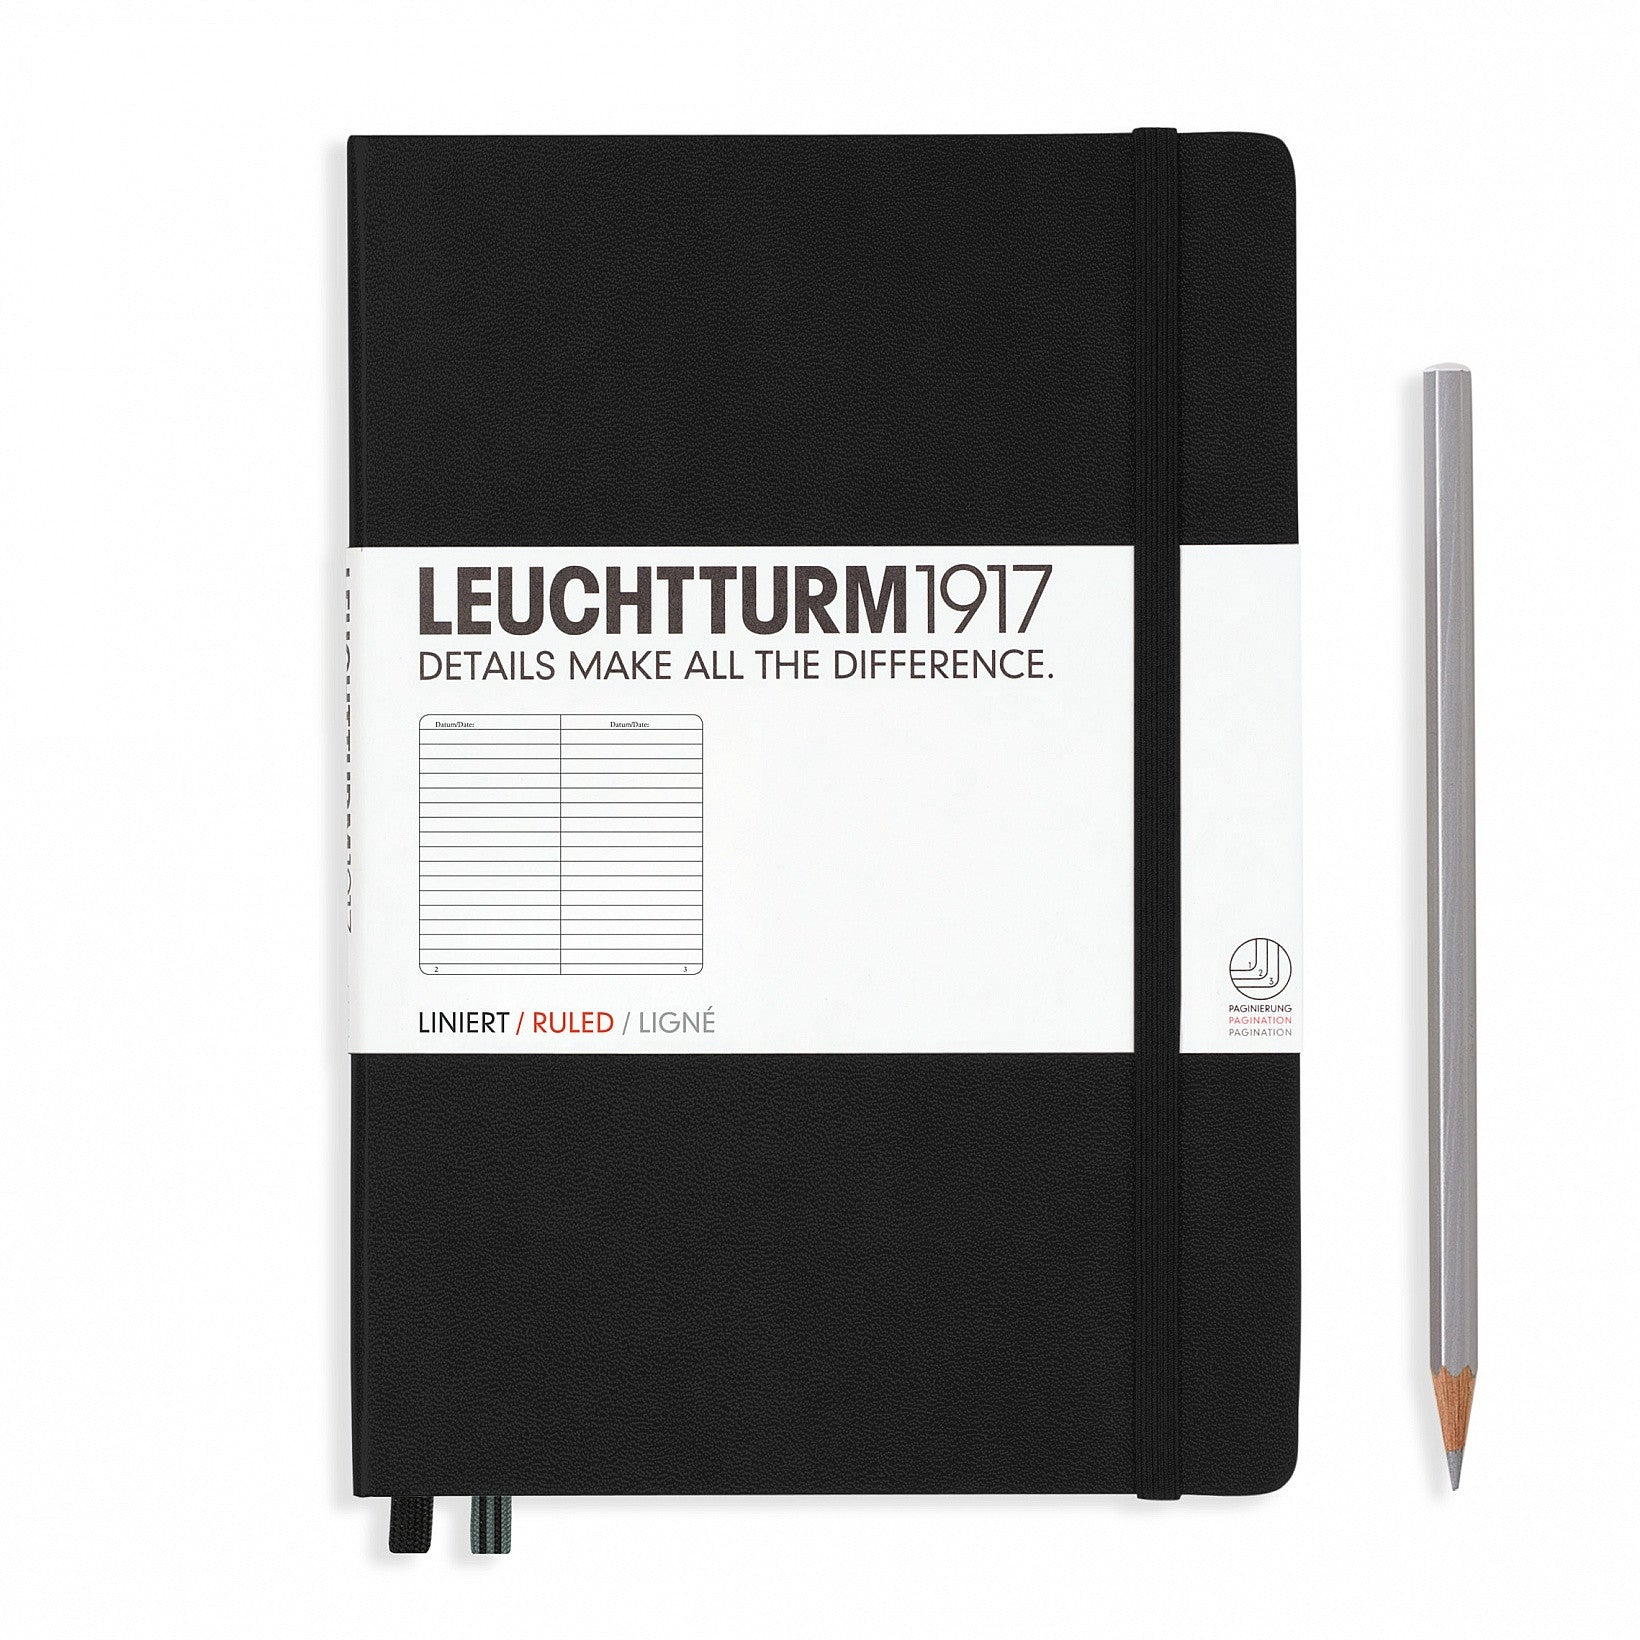 LEUCHTTURM1917 A5 Agenda Notebook LINED - Black